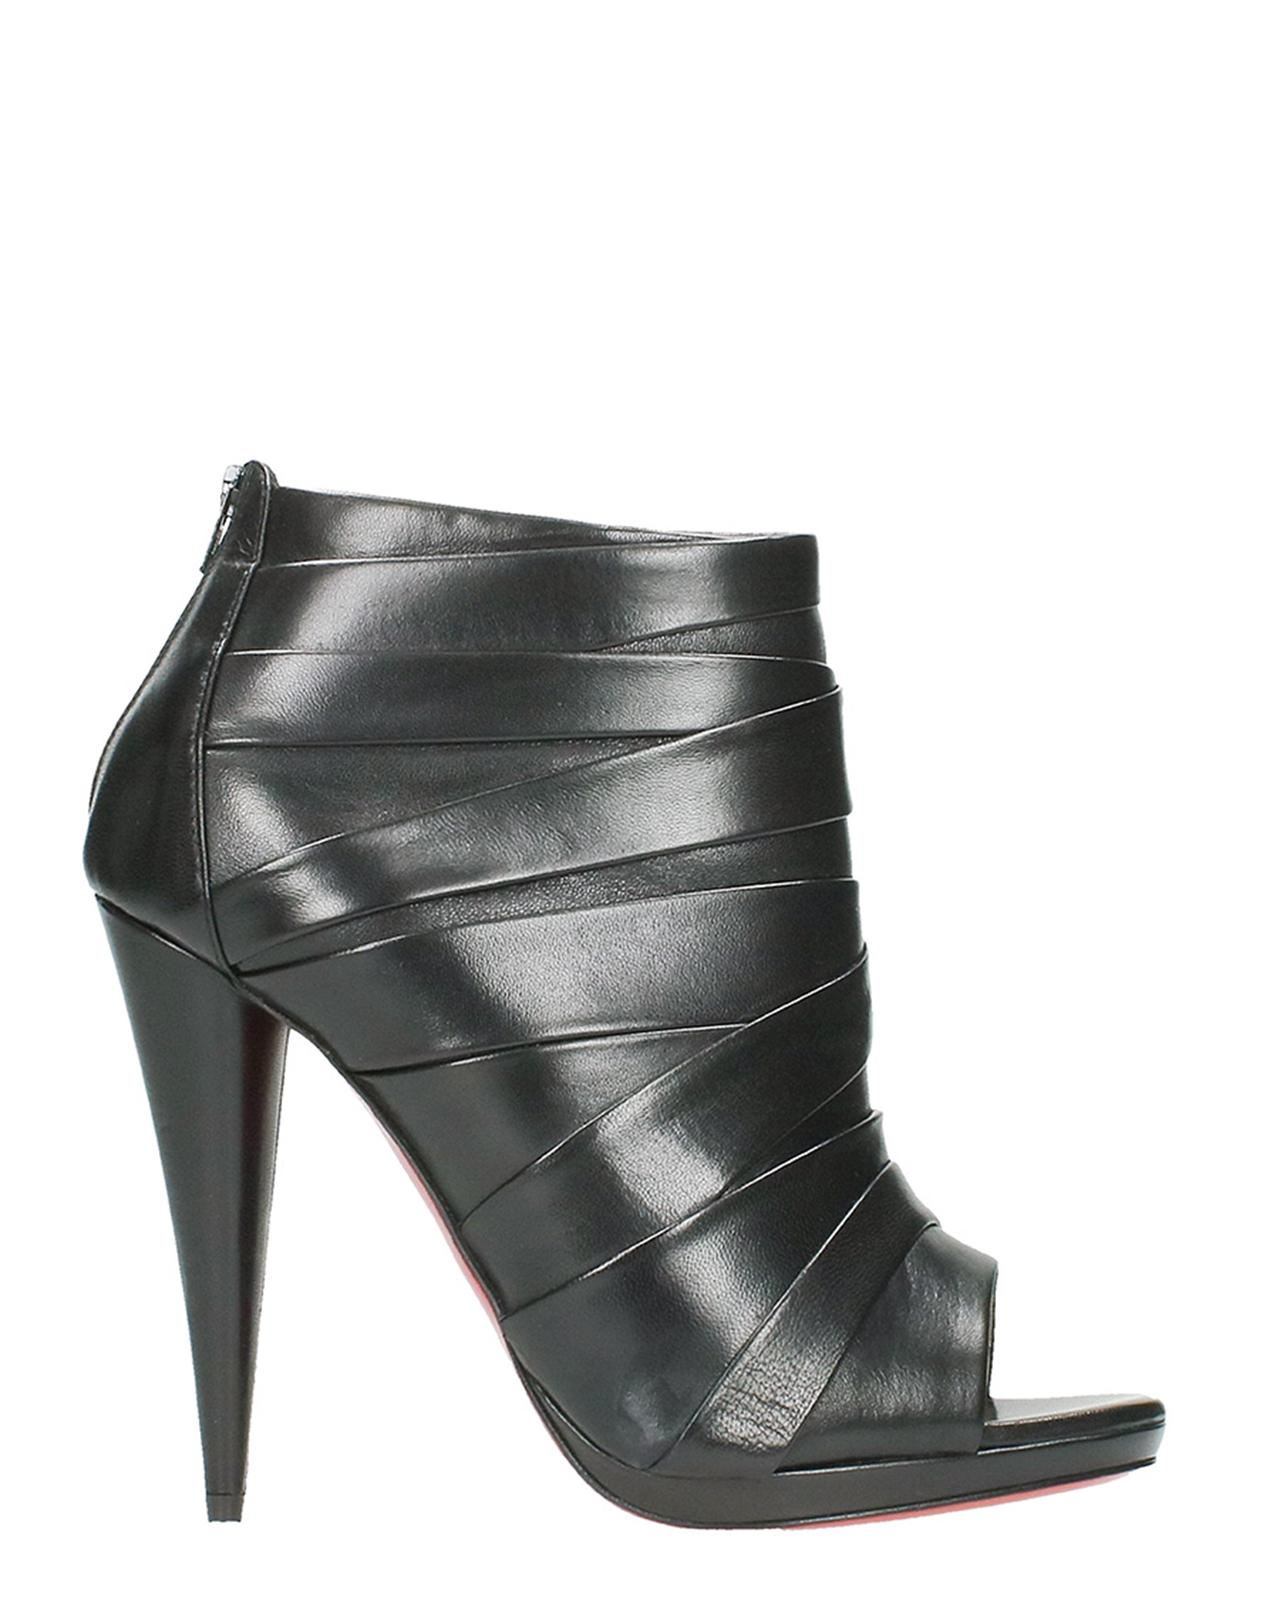 cc8bdece17c3 Christian Louboutin Boots + Booties - Up to 70% off at Tradesy